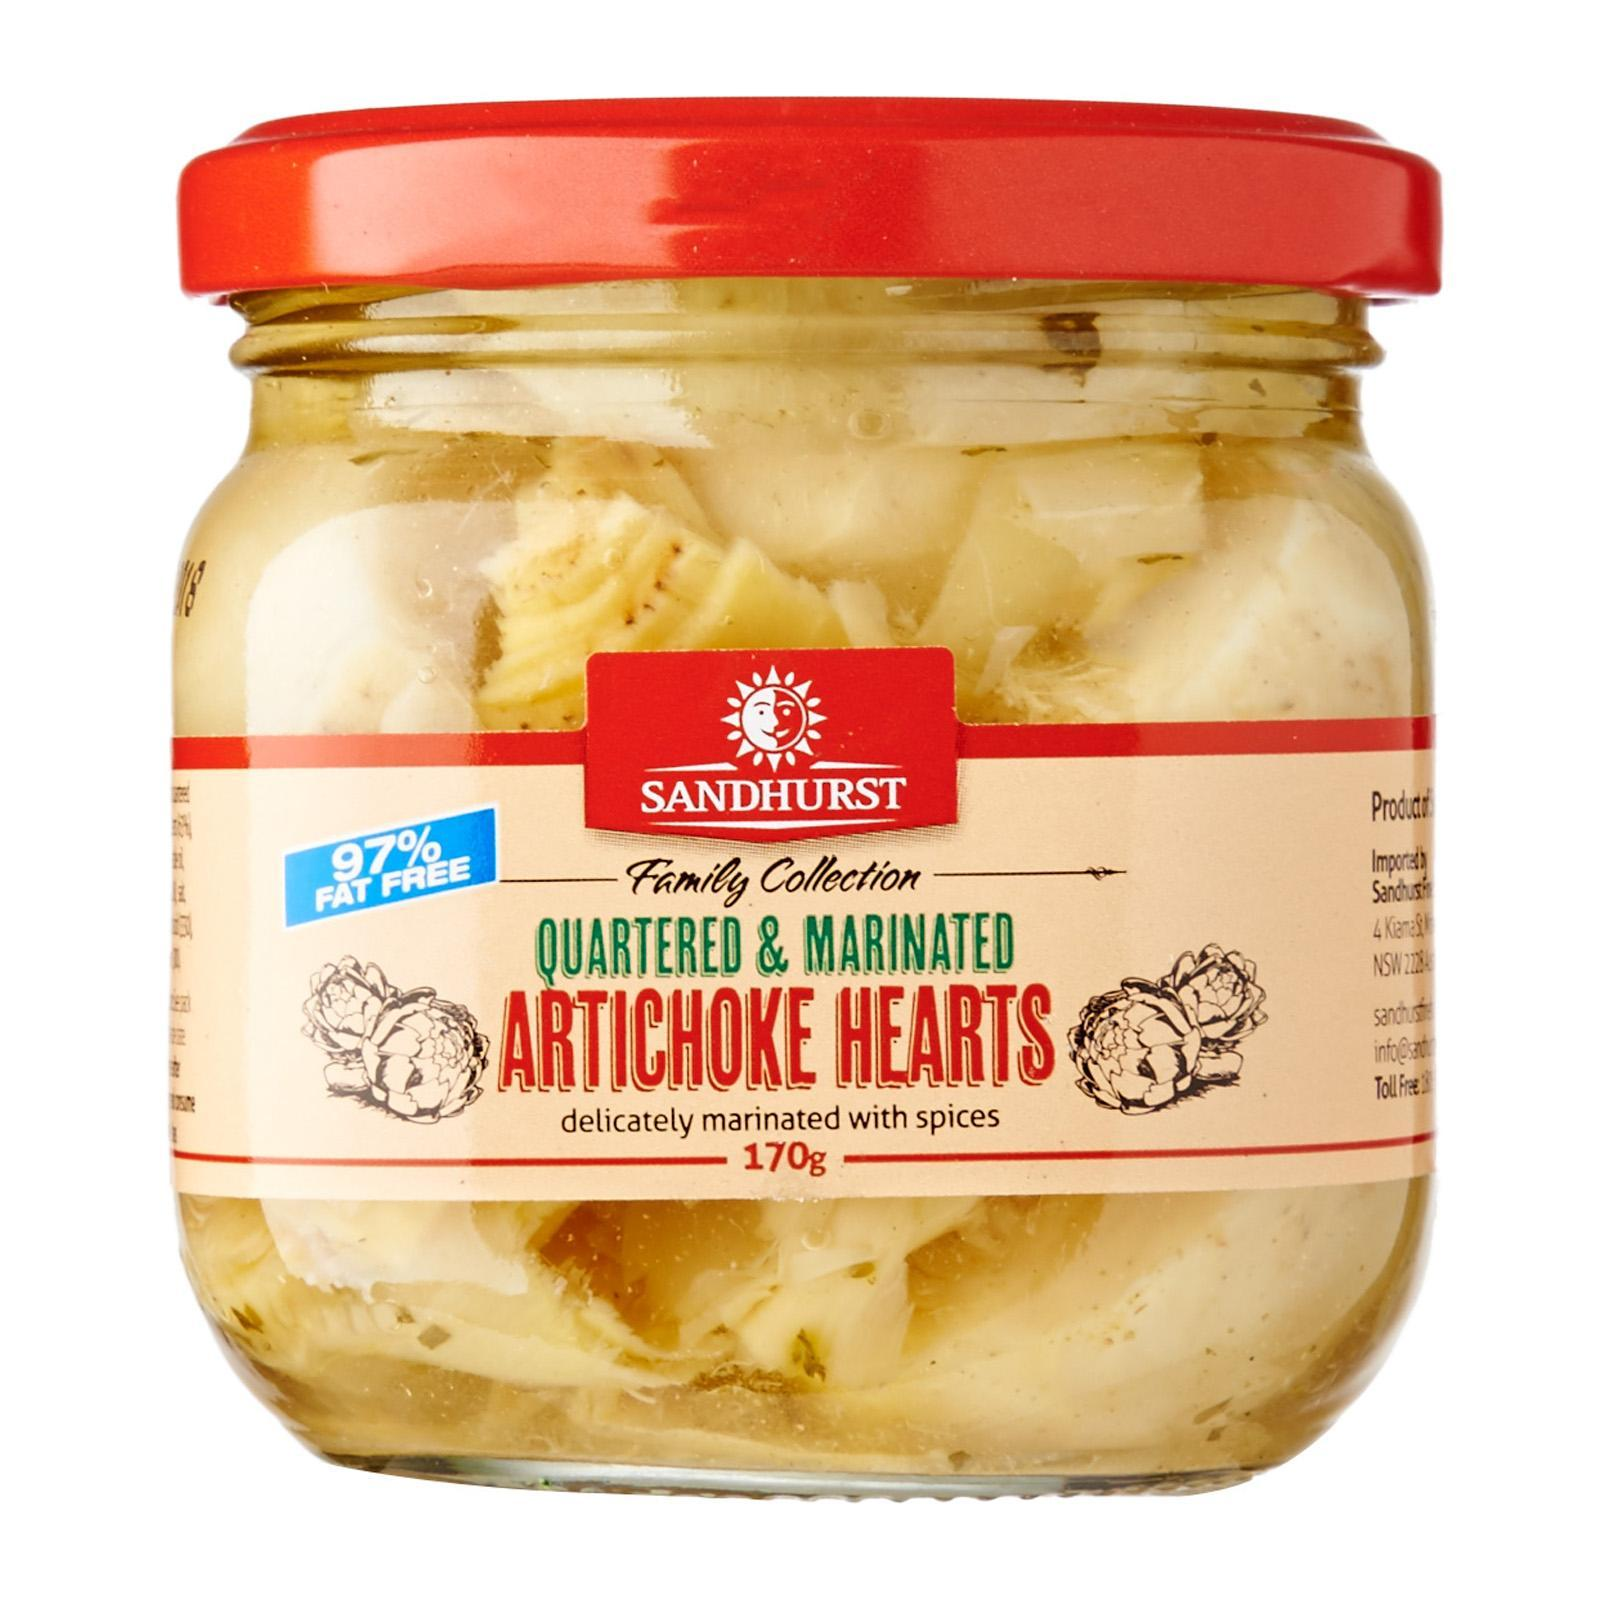 Sandhurst Marinated And Quartered 99 Fat Free Artichoke Hearts Lazada Singapore